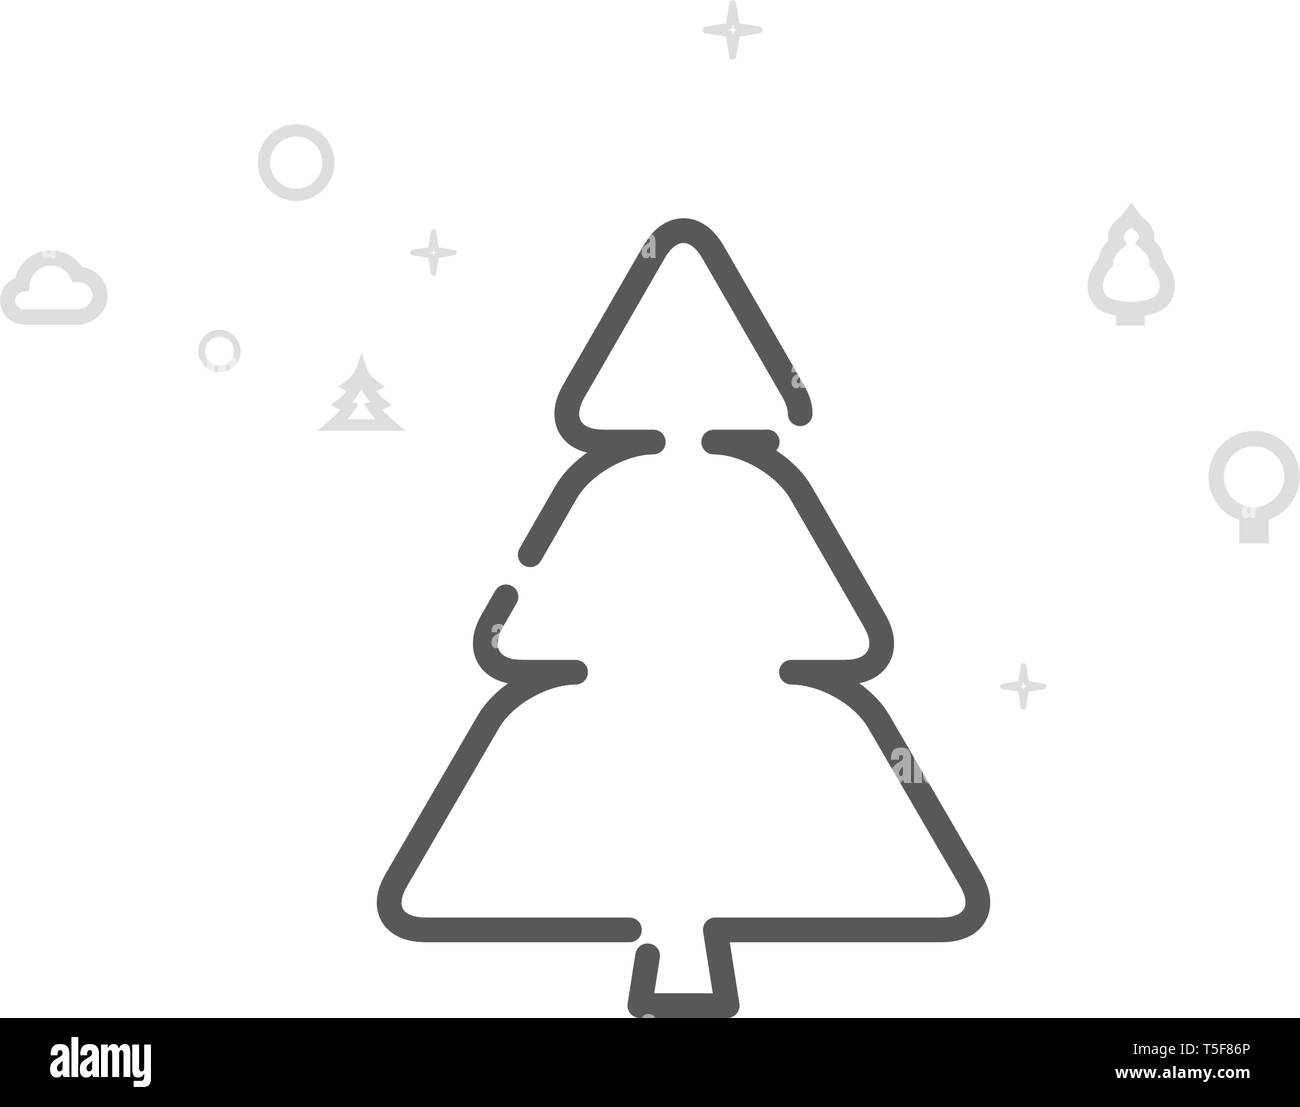 Fir Tree, Spruce Vector Line Icon. Wild Tree Symbol, Pictogram, Sign. Light Abstract Geometric Background. Editable Stroke. Adjust Line Weight. - Stock Vector